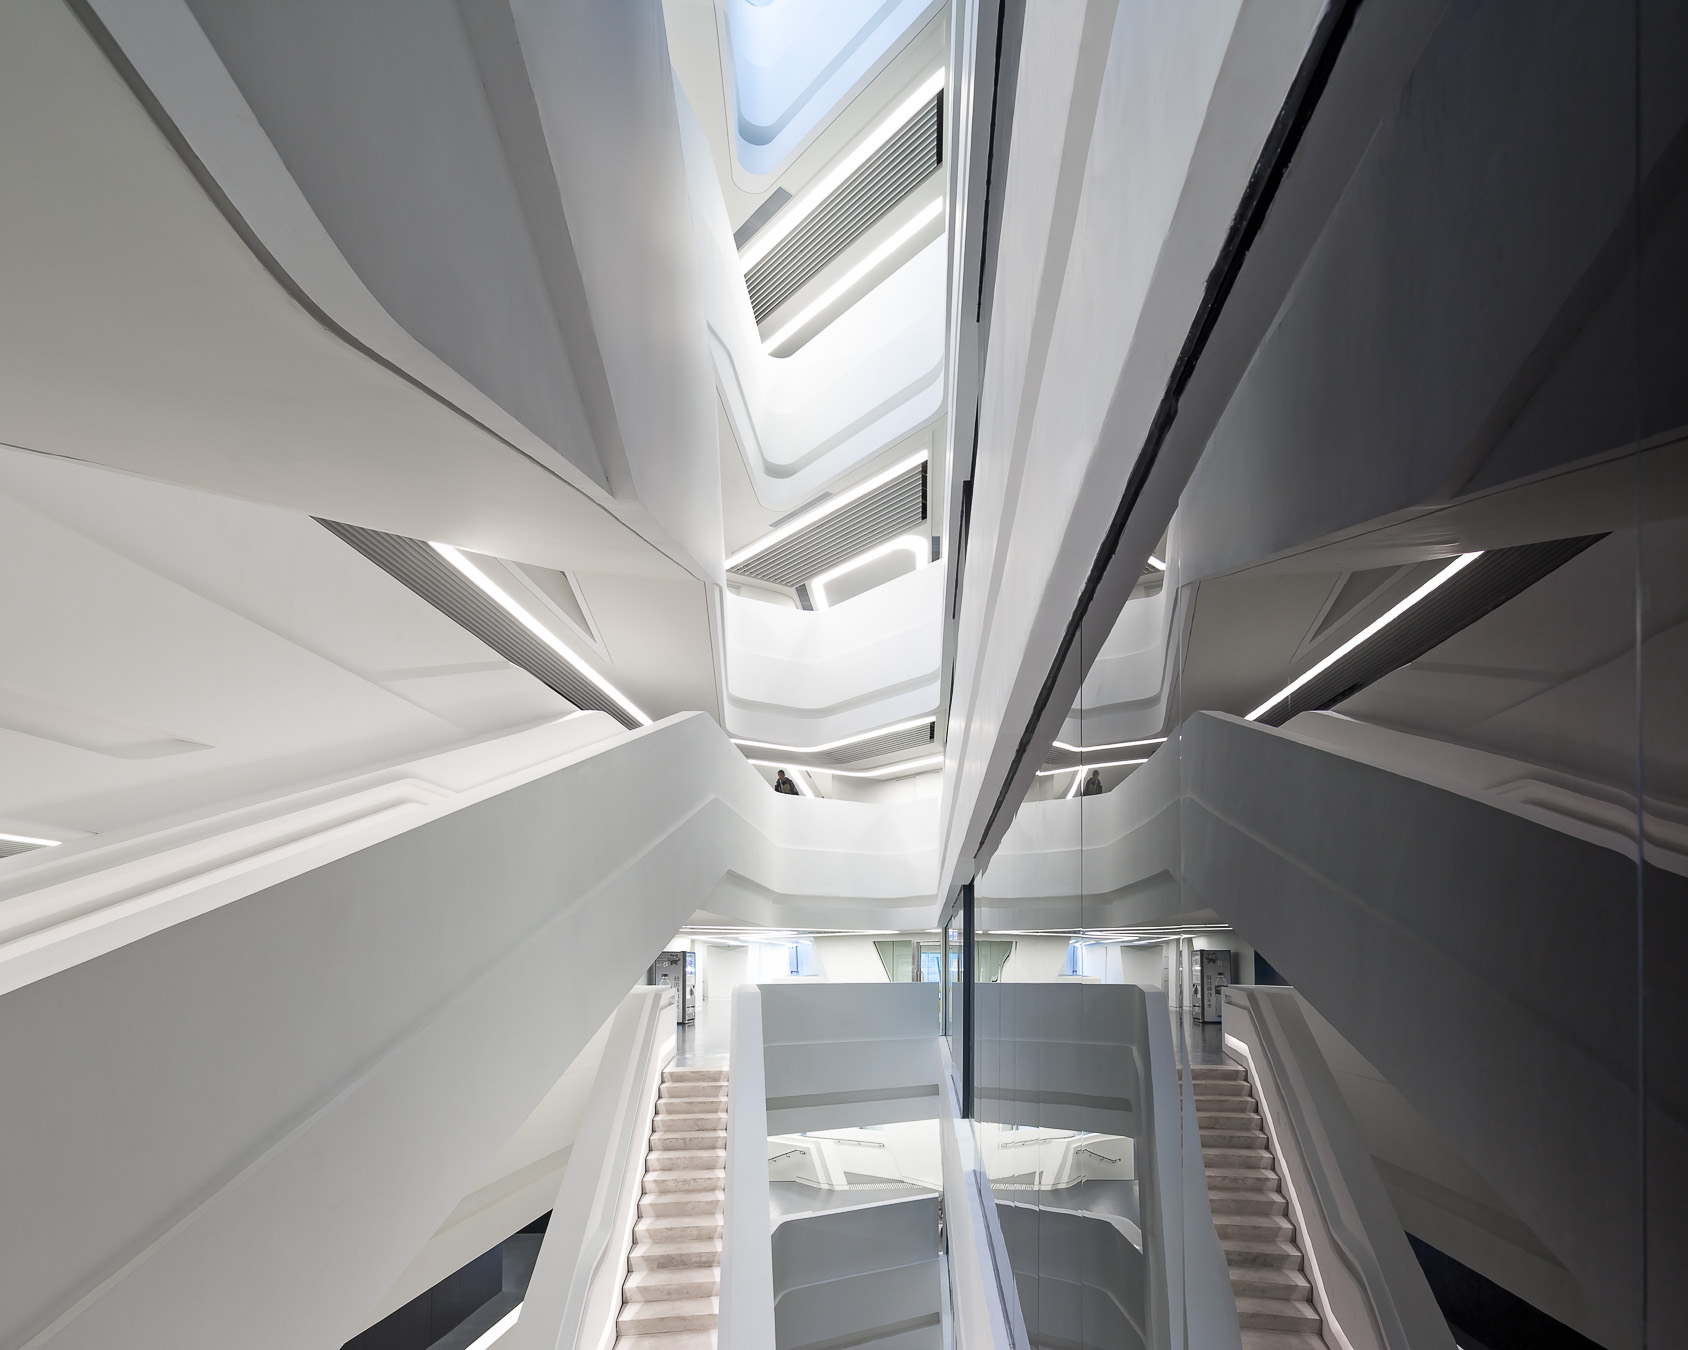 doublespace_innovation_tower_hong_kong_zaha_hadid_architects-56.jpg